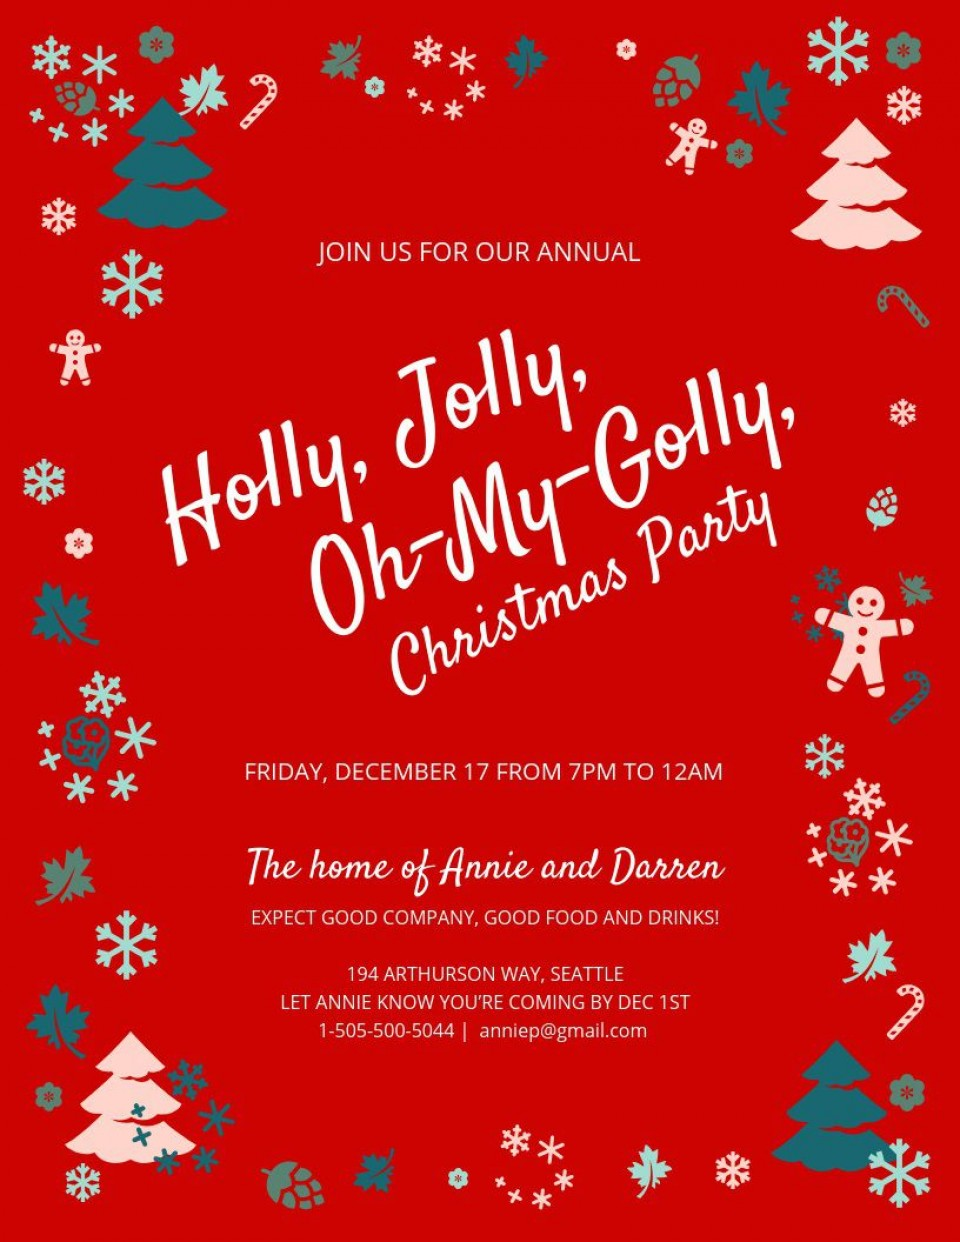 003 Awesome Christma Party Invitation Template Highest Clarity  Funny Free Download Word Card960